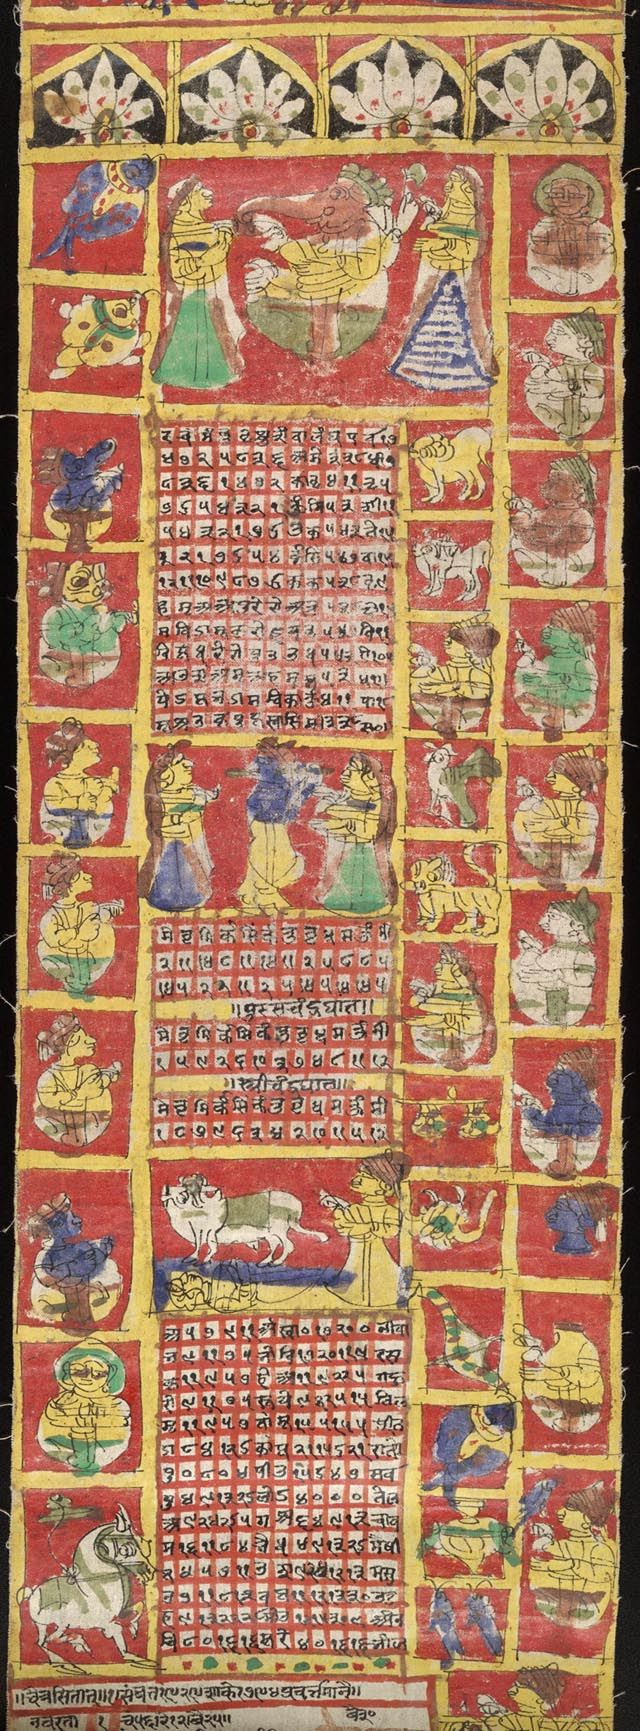 Almanac for Hindu year 1871-1872. Rajastan, India: 1871. Fabric. Southern Asian Section, Asian Division, Library of Congress (92) The Heavens - World Treasures: Beginnings   Exhibitions - Library of Congress